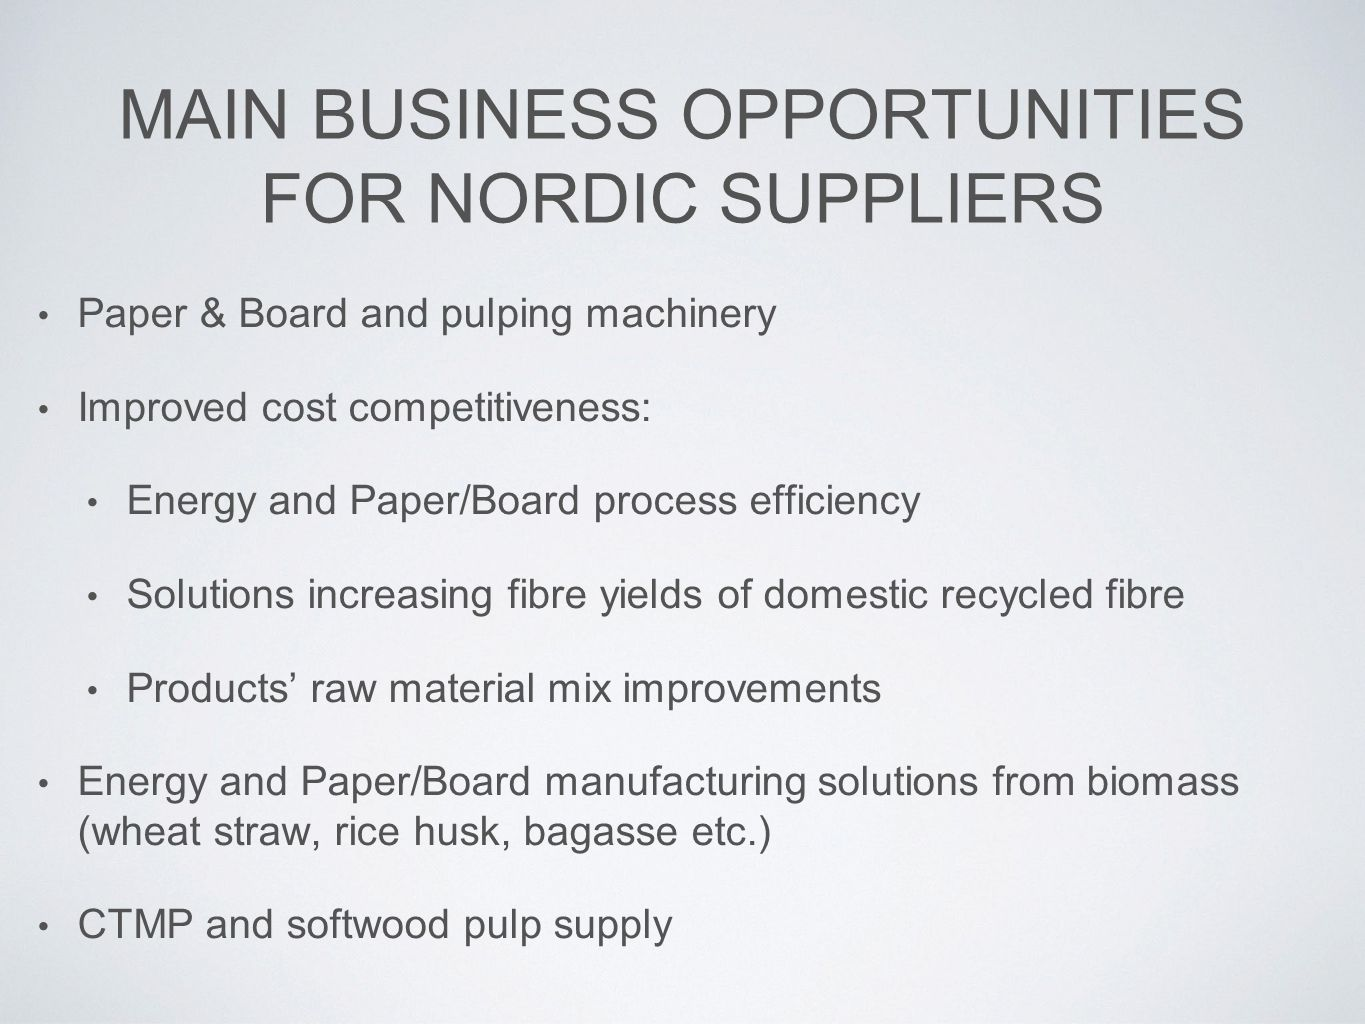 MAIN BUSINESS OPPORTUNITIES FOR NORDIC SUPPLIERS Paper & Board and pulping machinery Improved cost competitiveness: Energy and Paper/Board process efficiency Solutions increasing fibre yields of domestic recycled fibre Products' raw material mix improvements Energy and Paper/Board manufacturing solutions from biomass (wheat straw, rice husk, bagasse etc.) CTMP and softwood pulp supply